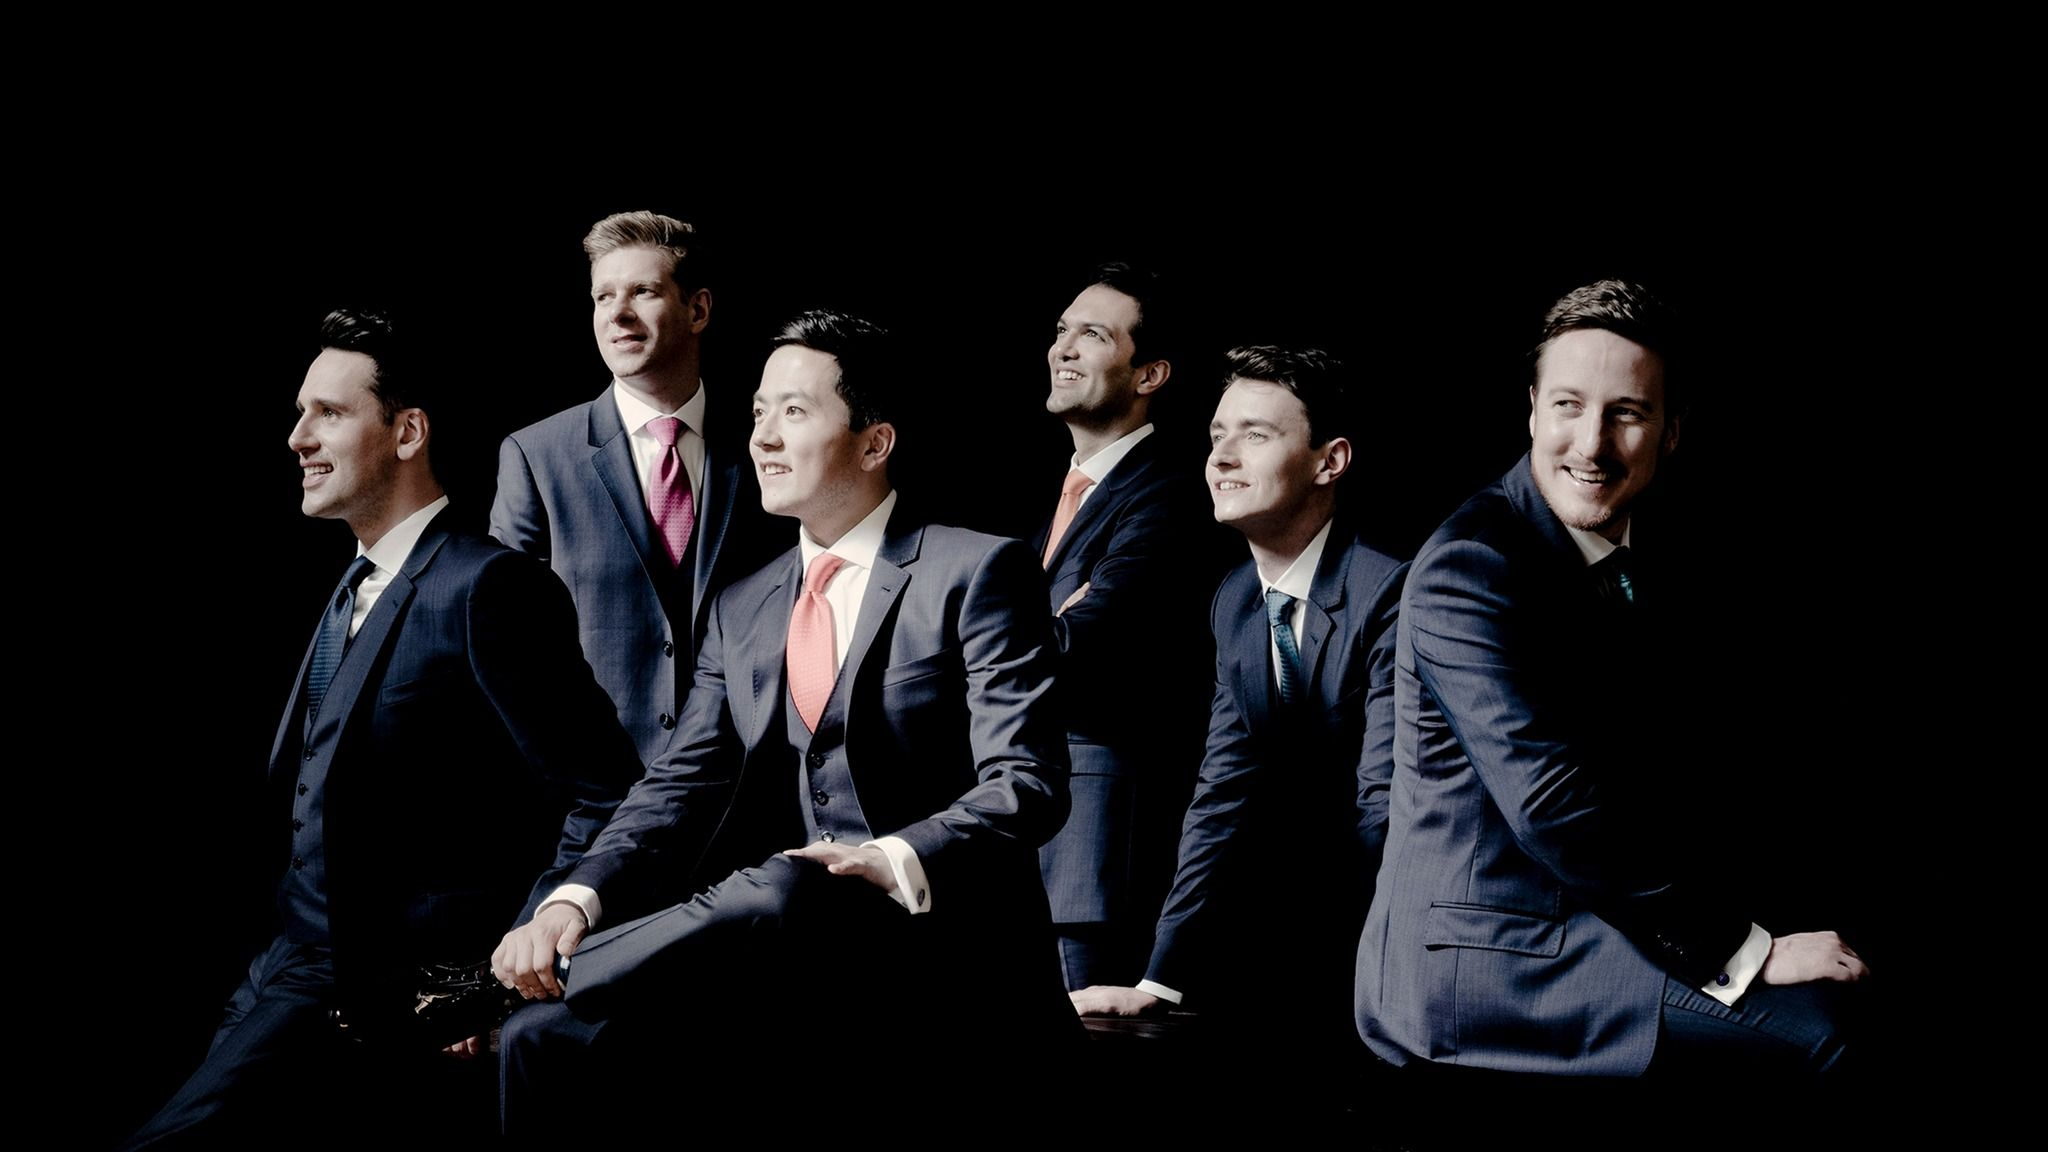 The King's Singers – GOLD